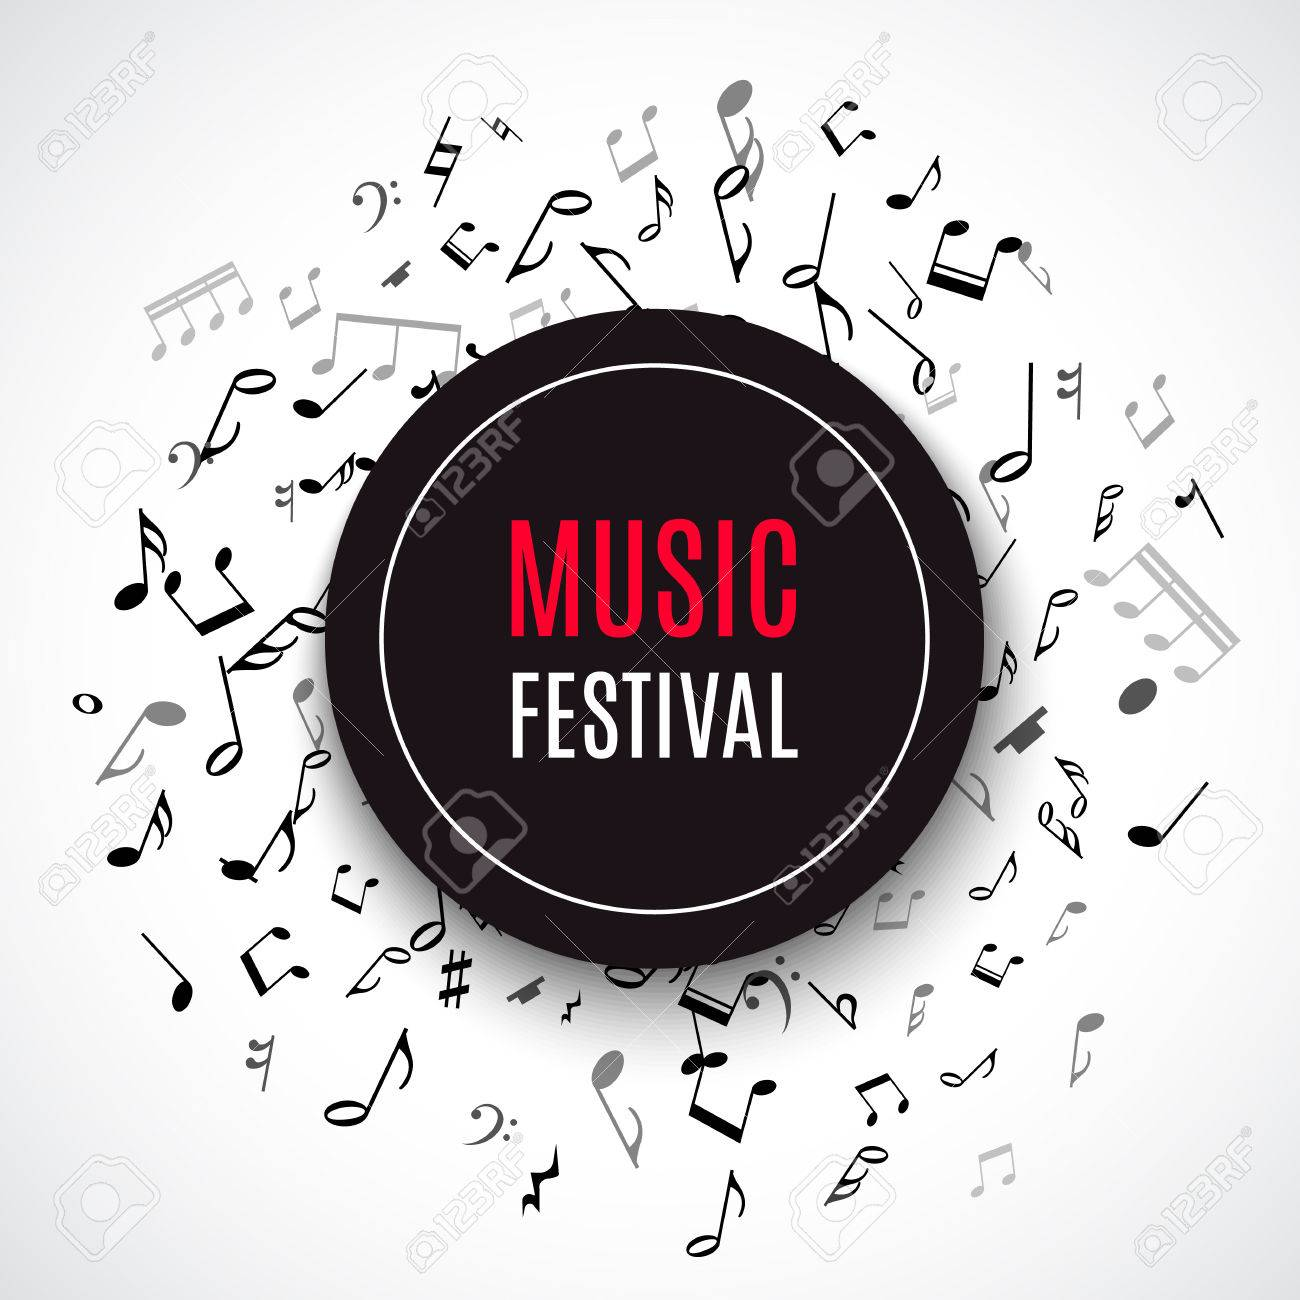 Abstract musical concert flyer with black notes on white background. Vector Illustration for music design. Modern pop concept art melody banner. Sound key decoration with music symbol sign. - 53984715